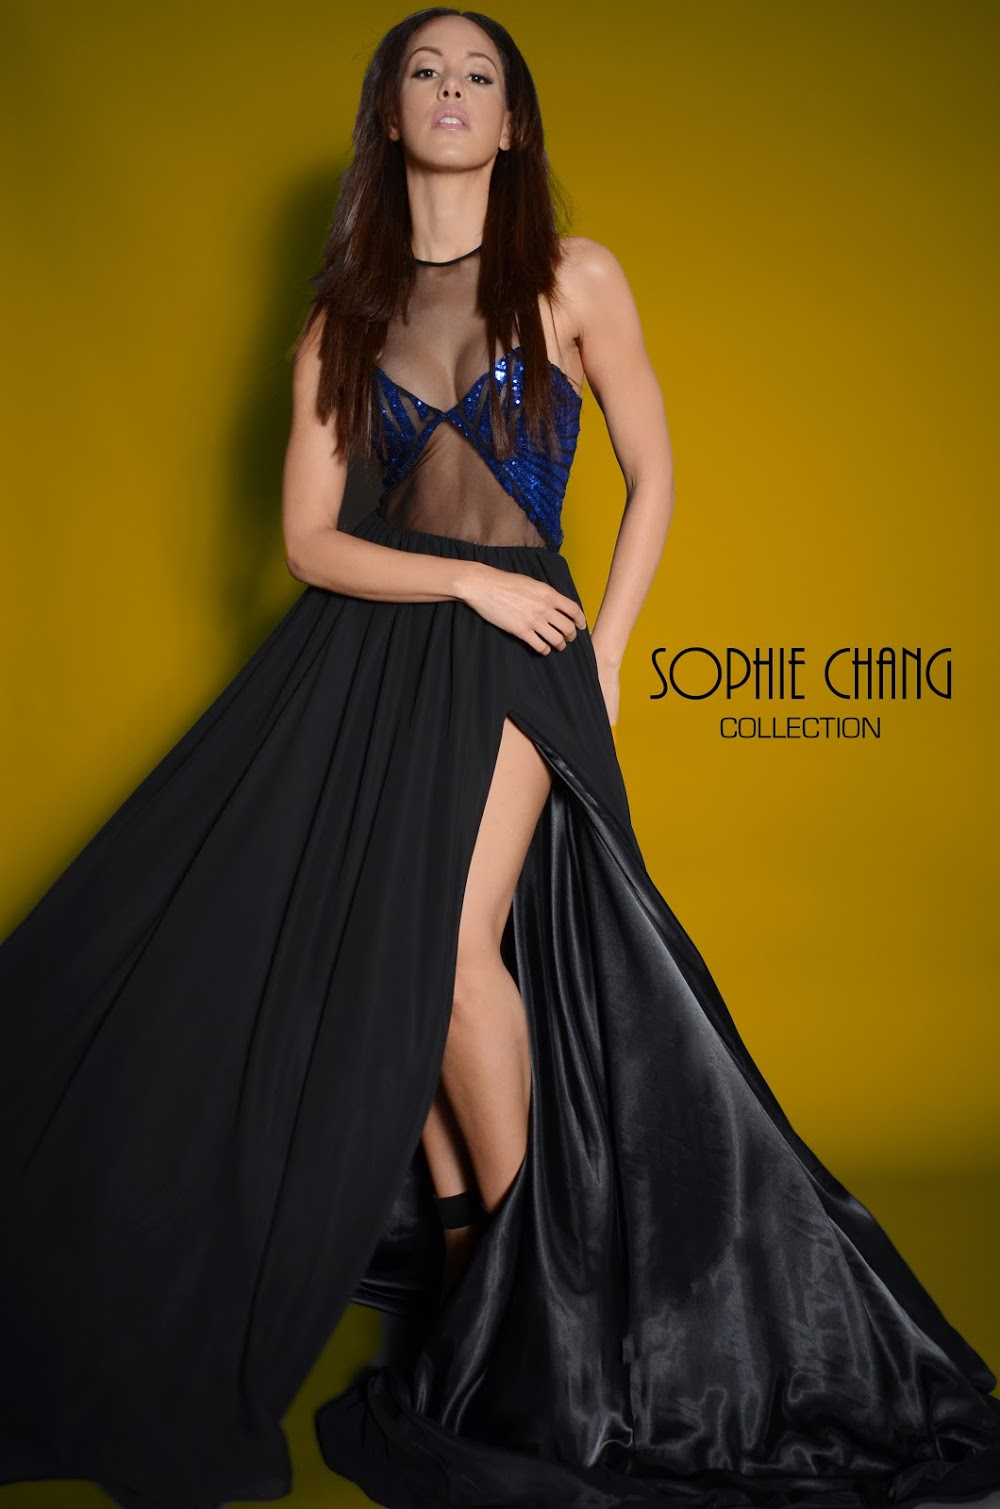 Sophie Chang Collection – Los Angeles